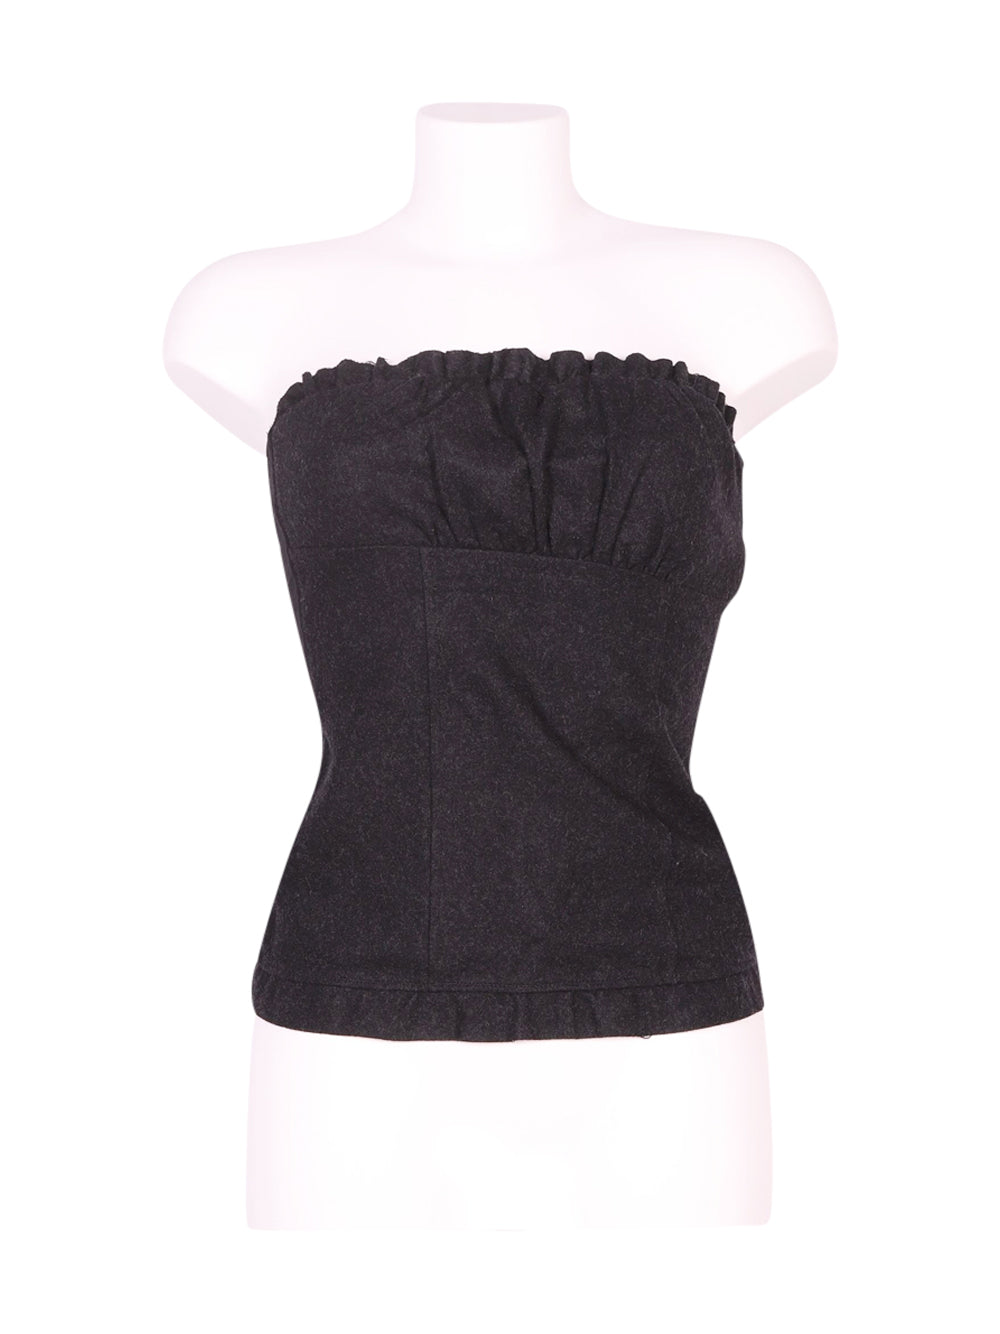 Front photo of Preloved Intimissimi Black Woman's sleeveless top - size 6/XS